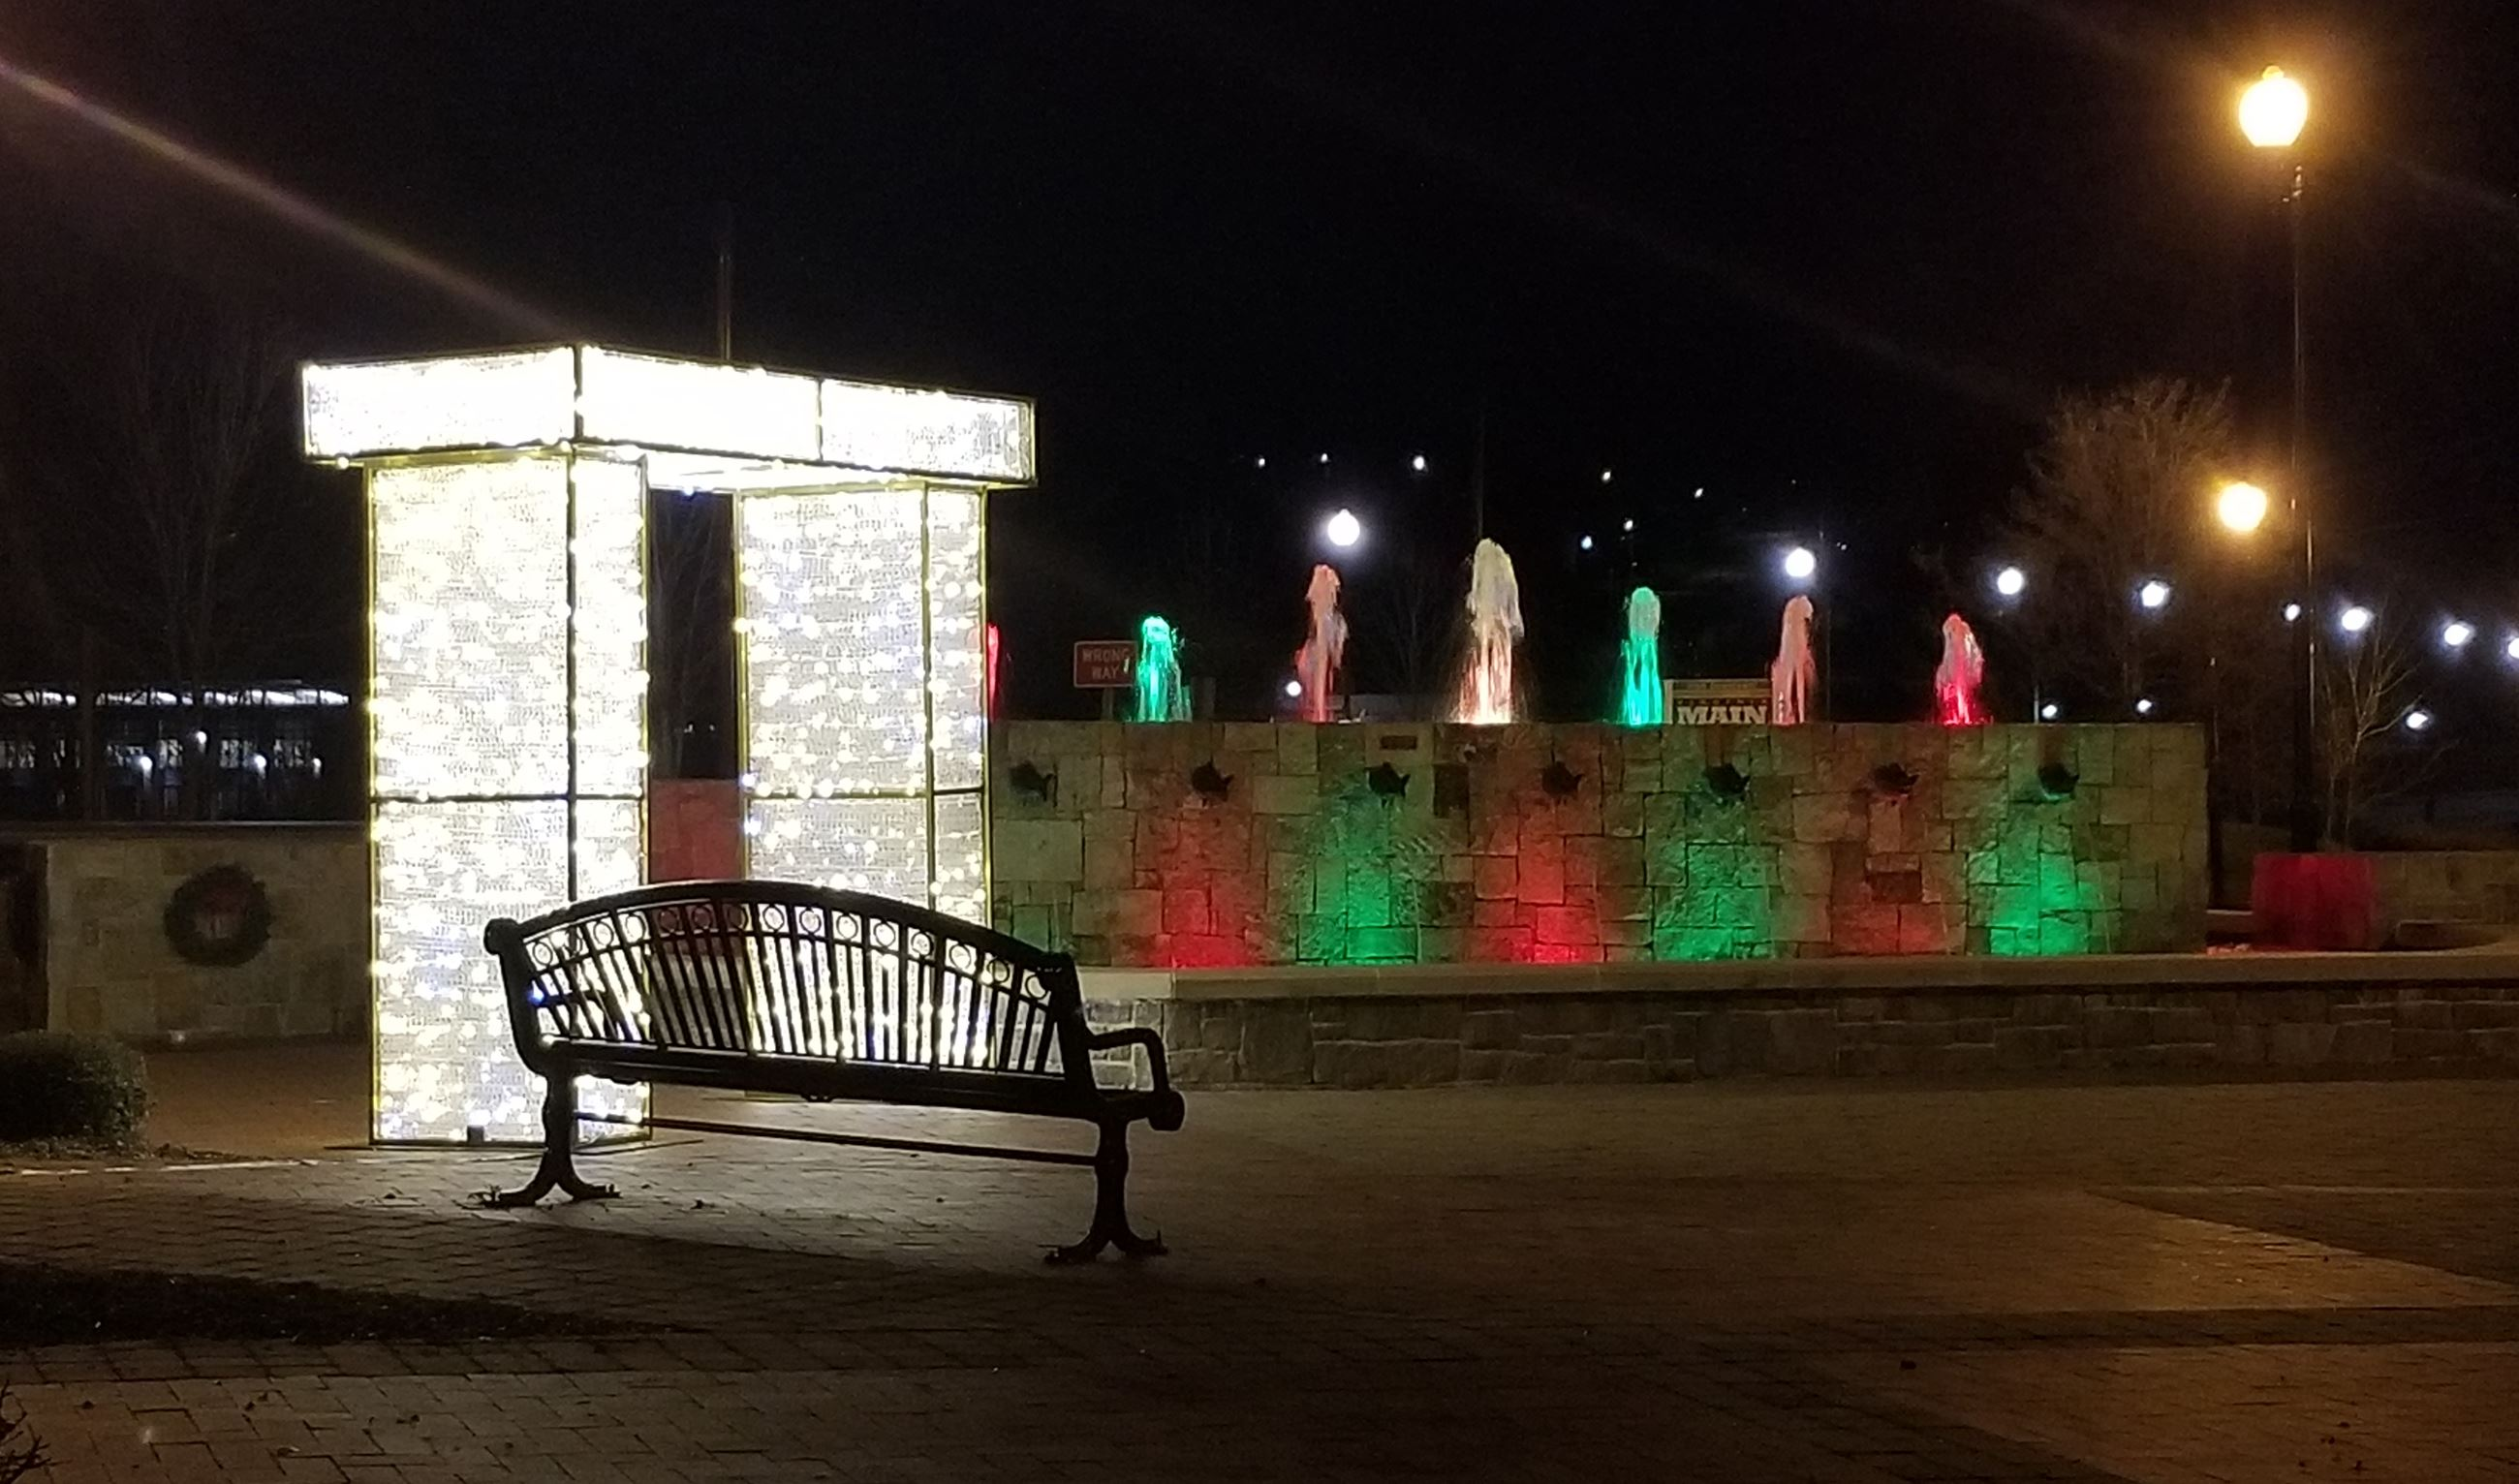 Holiday lights at the JTI Fountain and Main Street Plaza